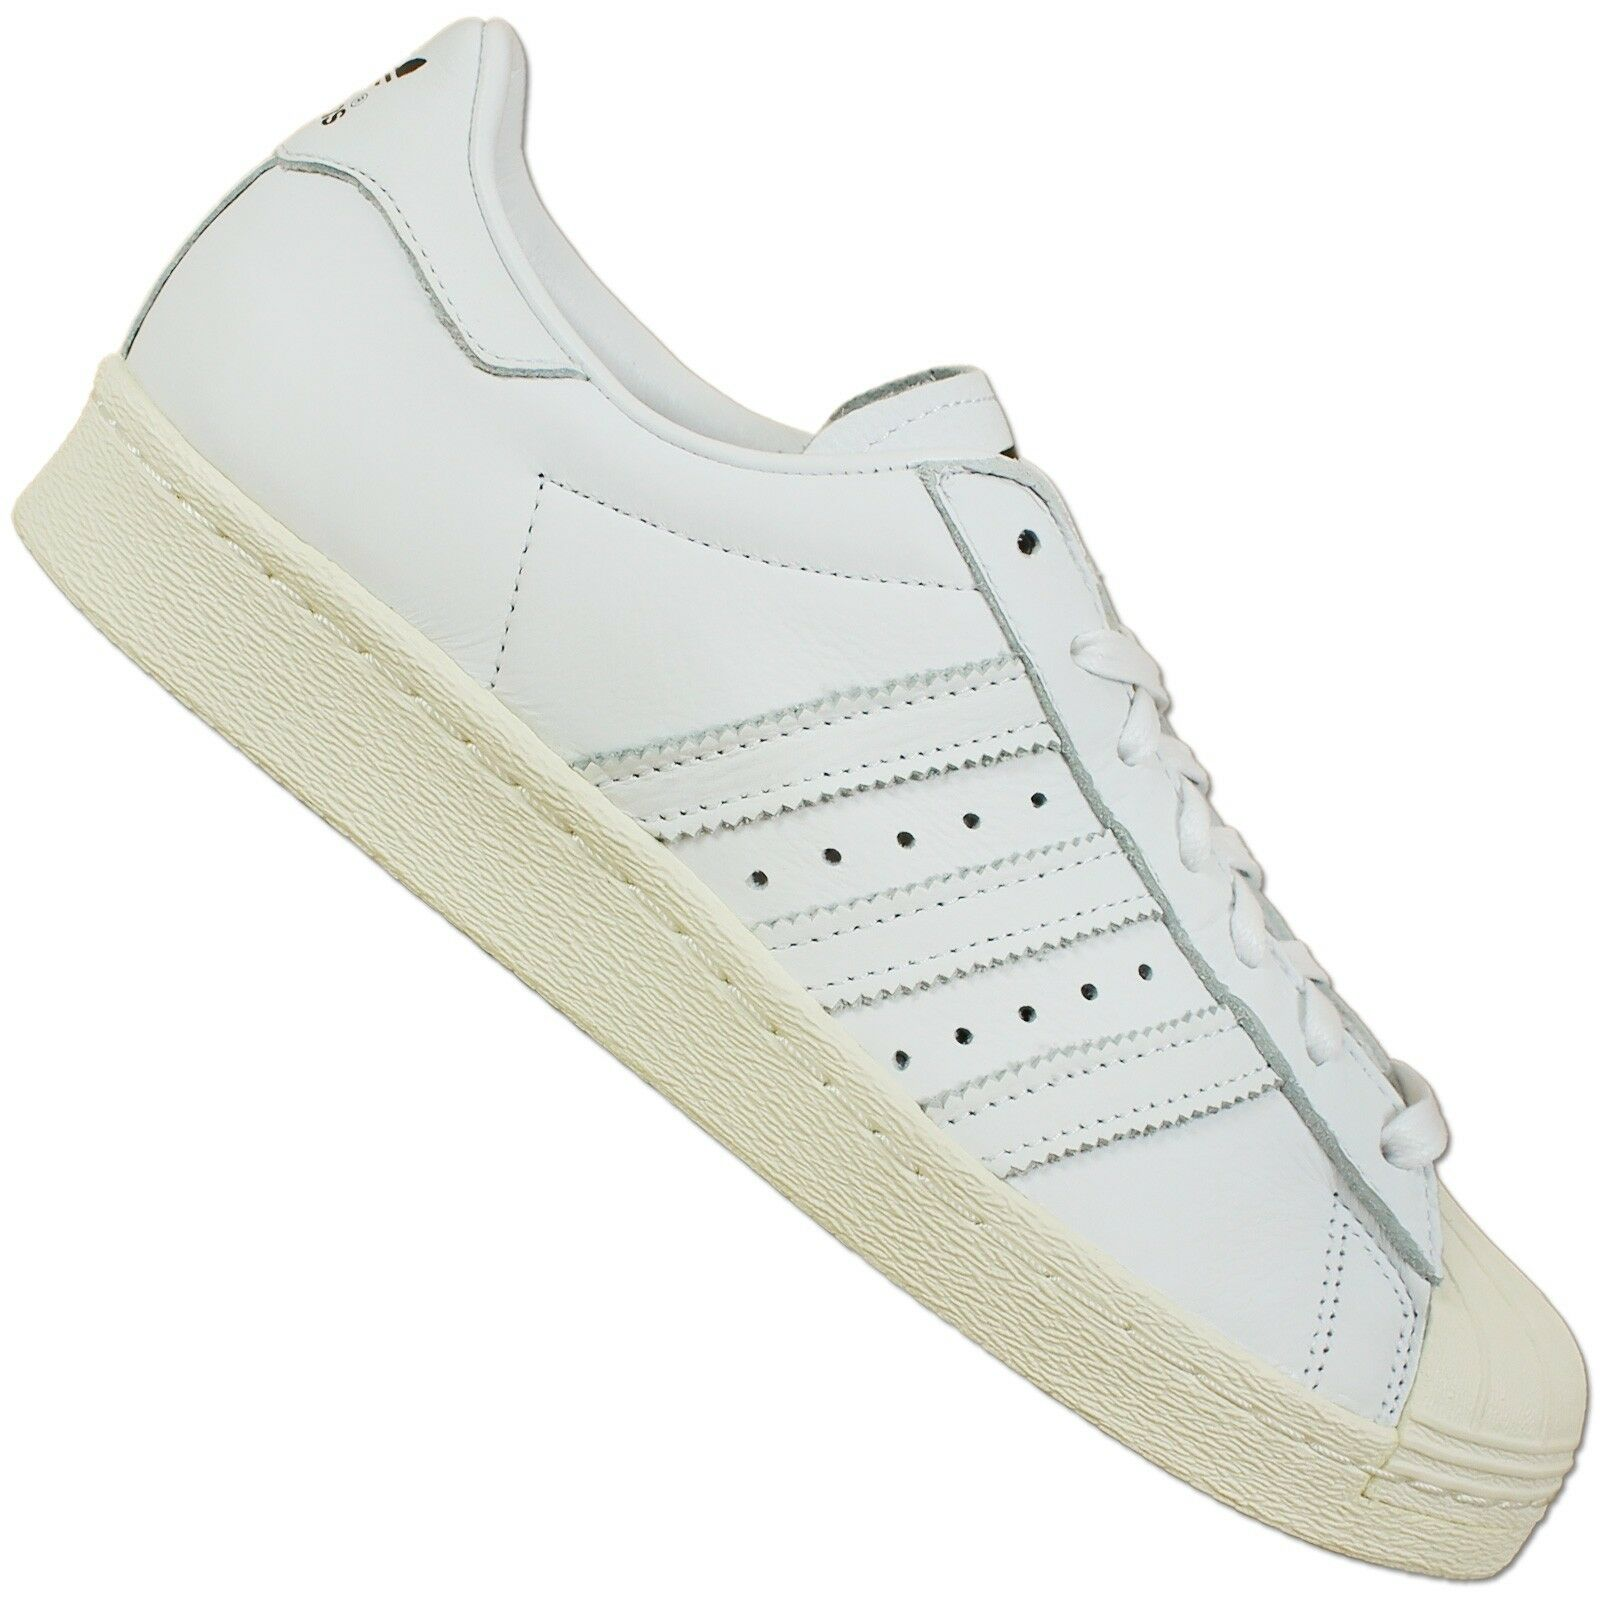 Adidas Superstar 70s Deluxe Retrosneaker Full-Grain-Leder White 37 1 3